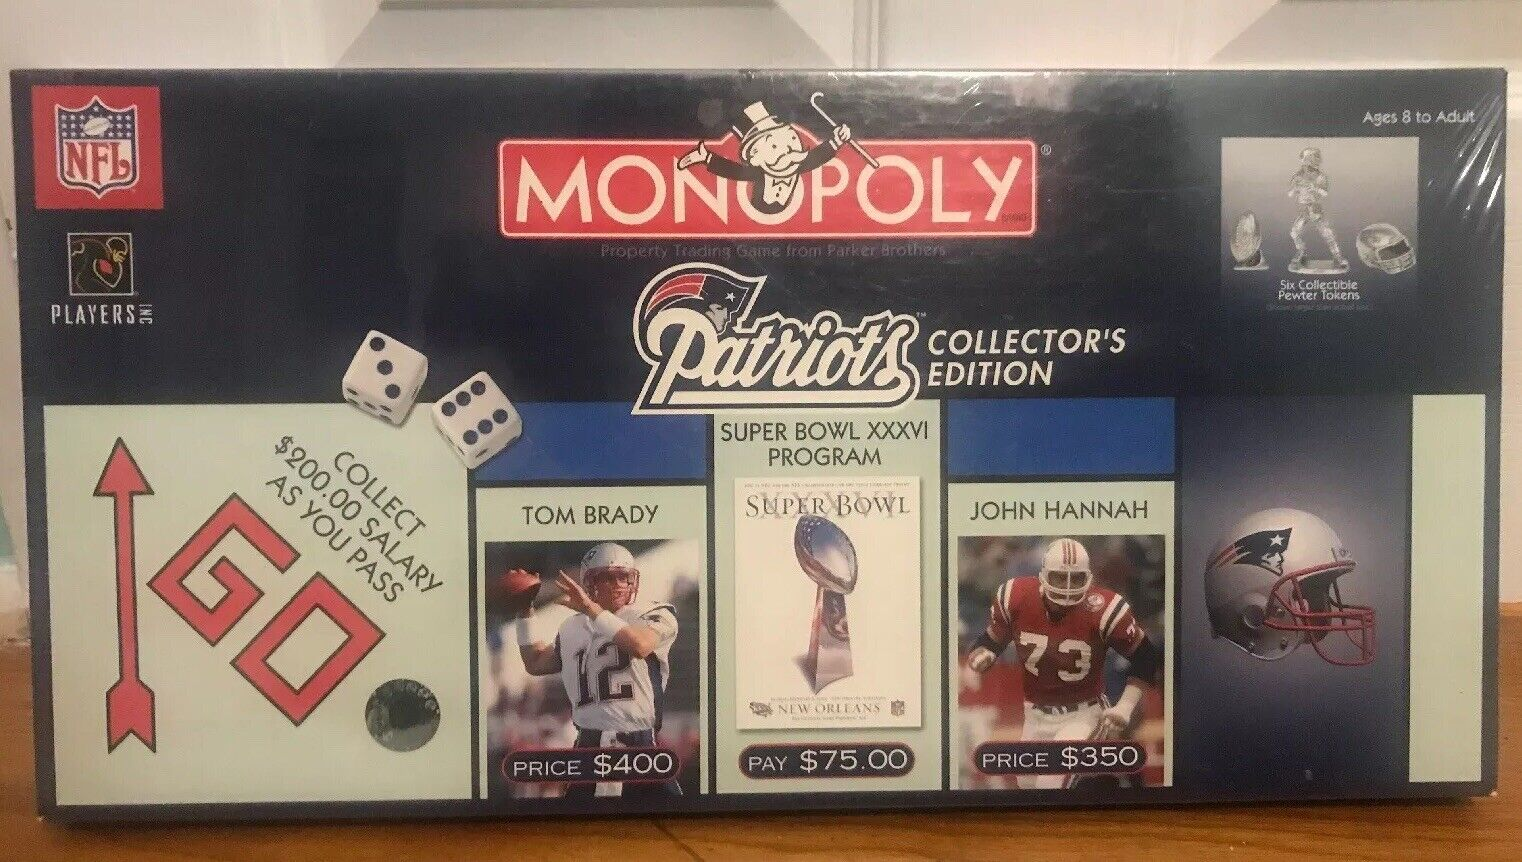 NEW New England Patriots Collector's Edition Monopoly 2003 Board Game RARE